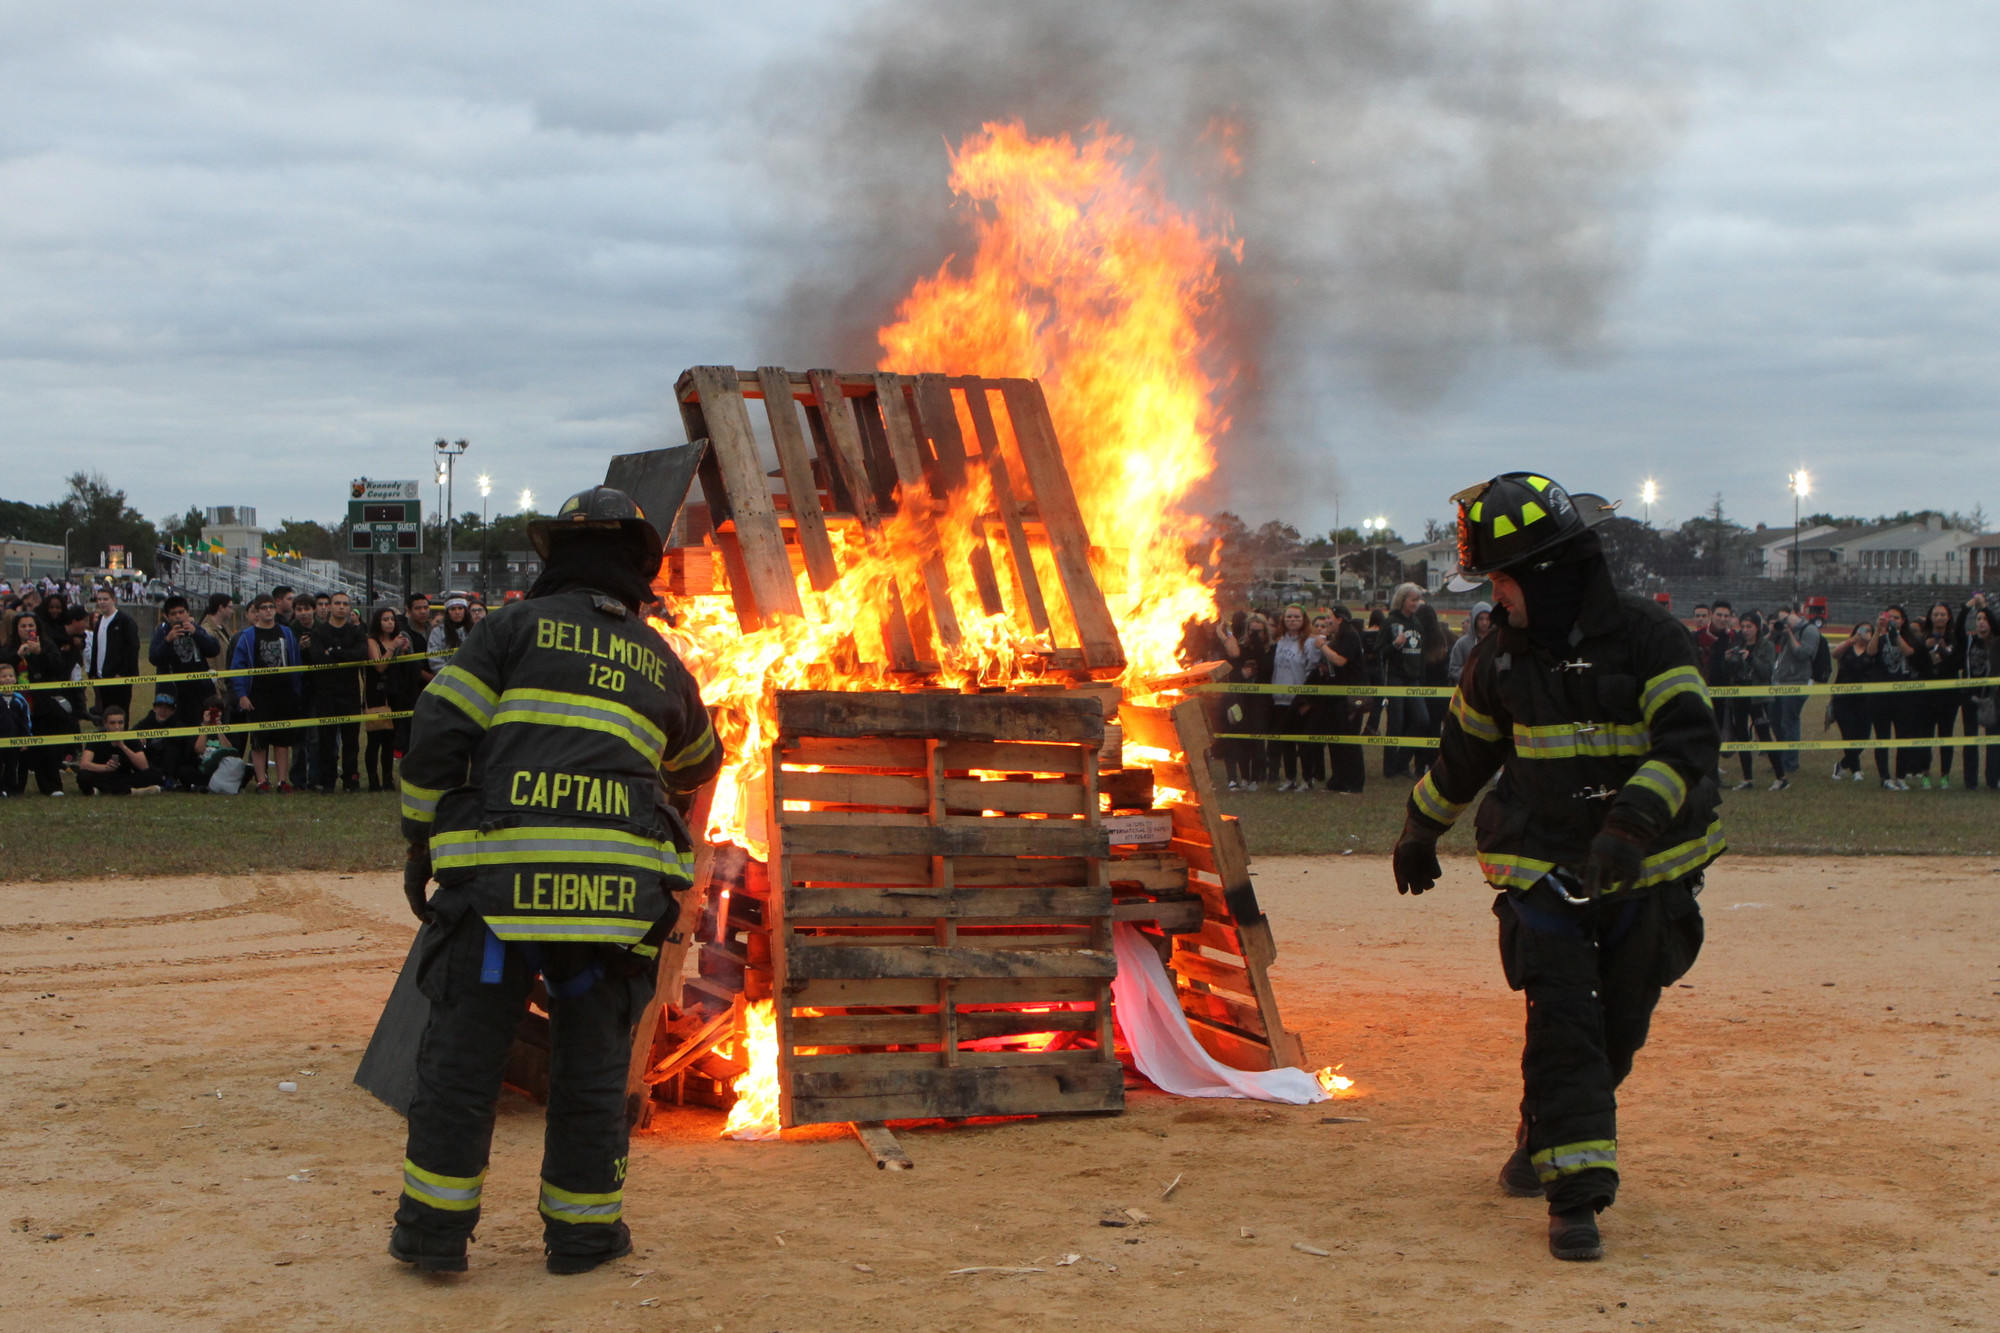 Bellmore Fire Department officials lit the traditional bonfire while the